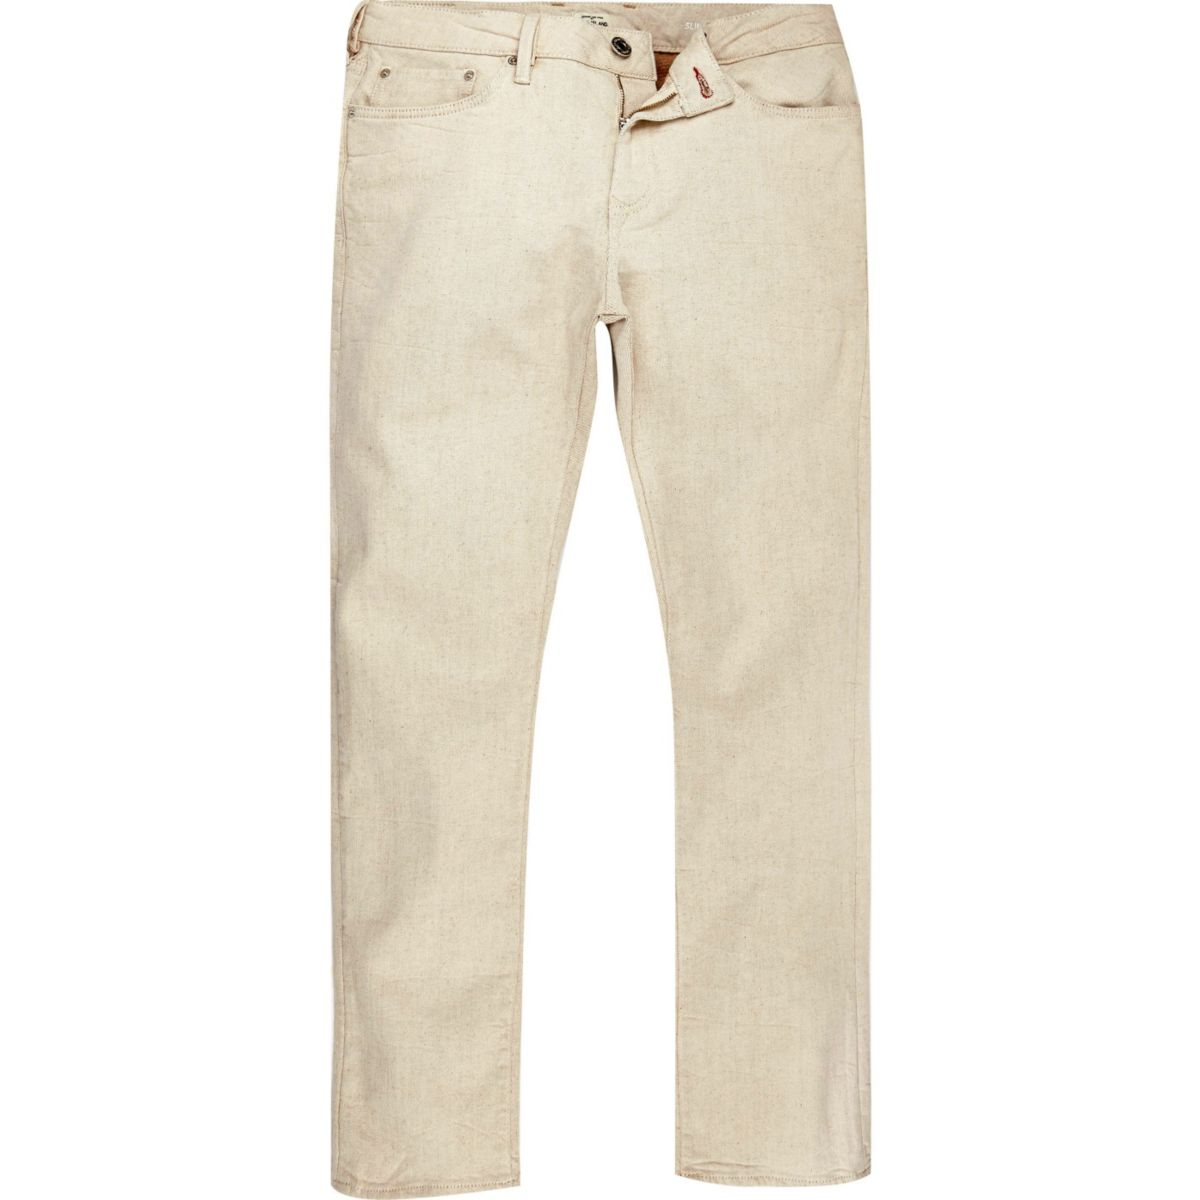 White Dylan slim fit jeans